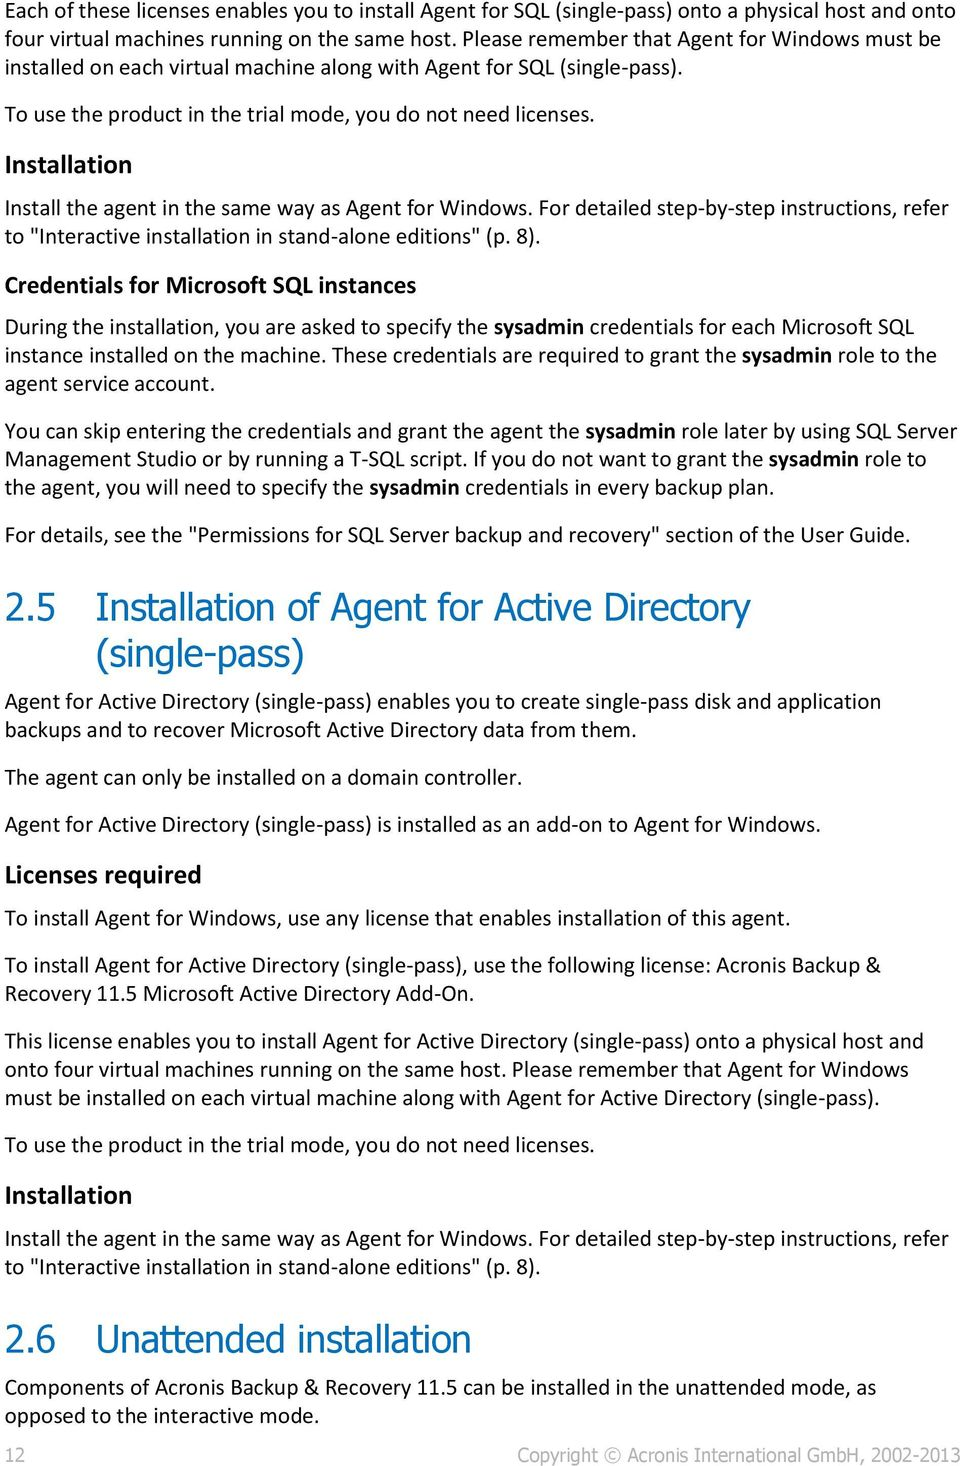 "Installation Install the agent in the same way as Agent for Windows. For detailed step-by-step instructions, refer to ""Interactive installation in stand-alone editions"" (p. 8)."